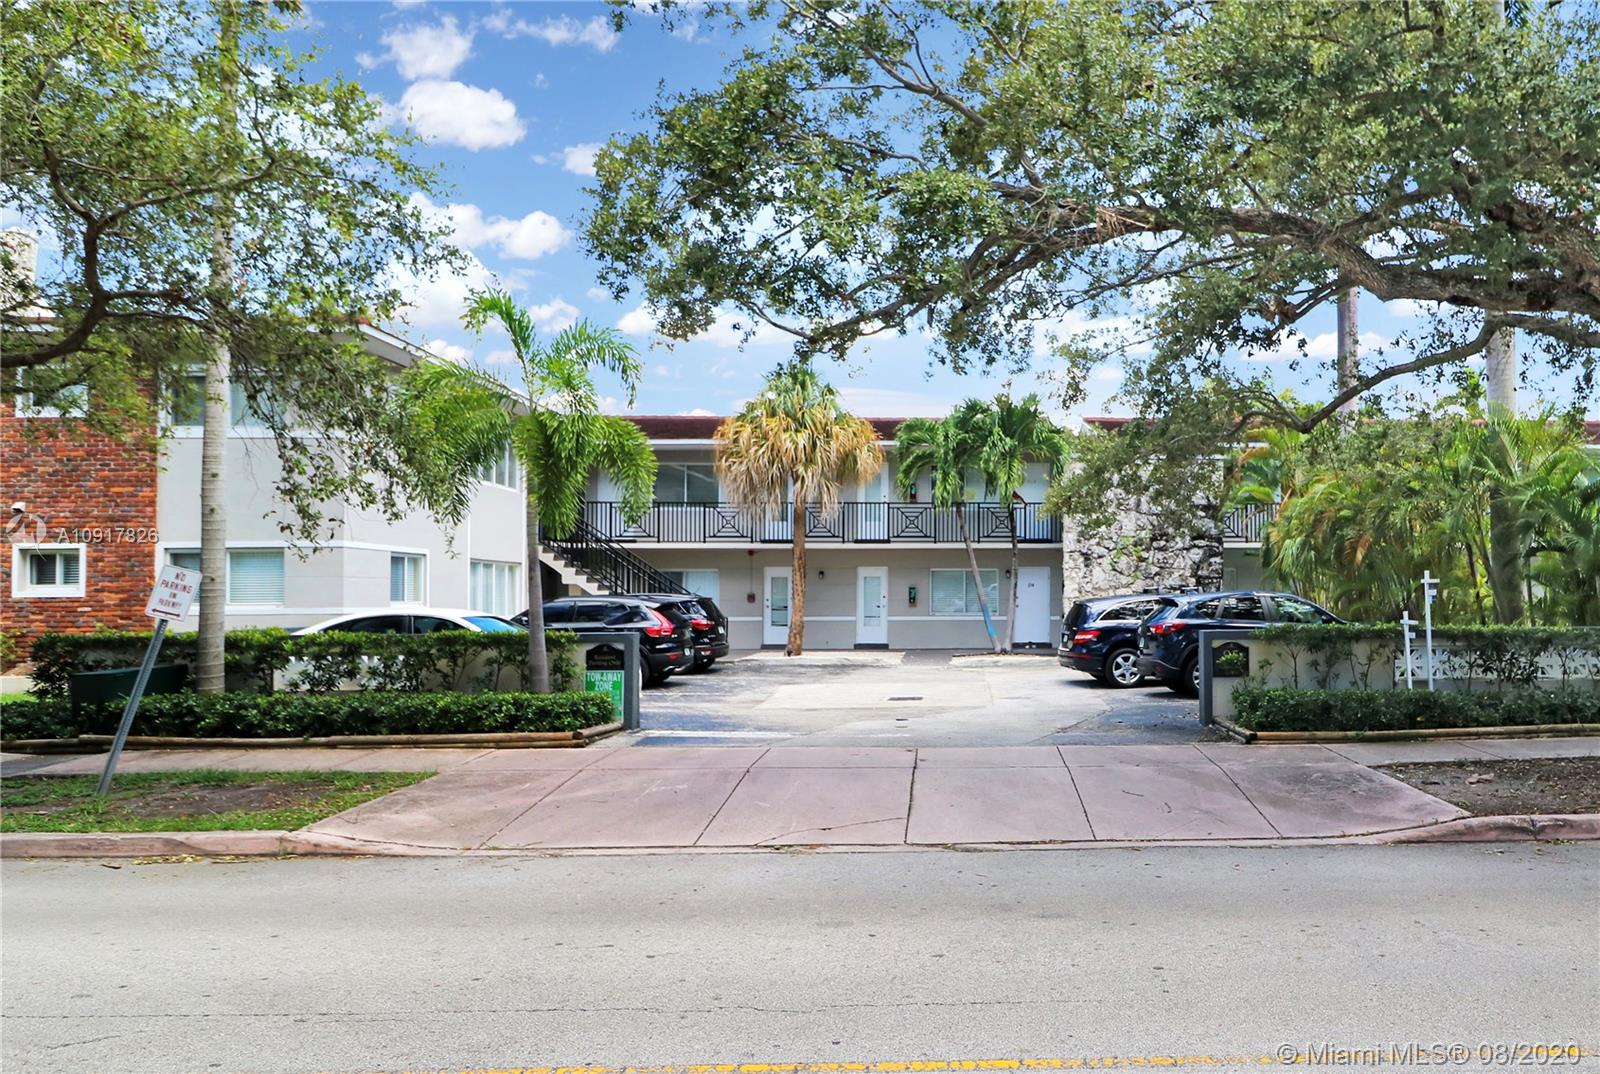 Don't miss out on this updated two bedrooms/one bath condo in desirable tree-lined Edgewater Dr! Well maintained community with unit located on the first with views of the pool area. Renovated kitchen and bath, hurricane shutters, crown molding, and beautiful tile floors throughout. Walking distance to Coconut Grove parks, restaurants, and shops. Close to US1, University of Miami, and downtown Coral Gables. A must see to appreciate.